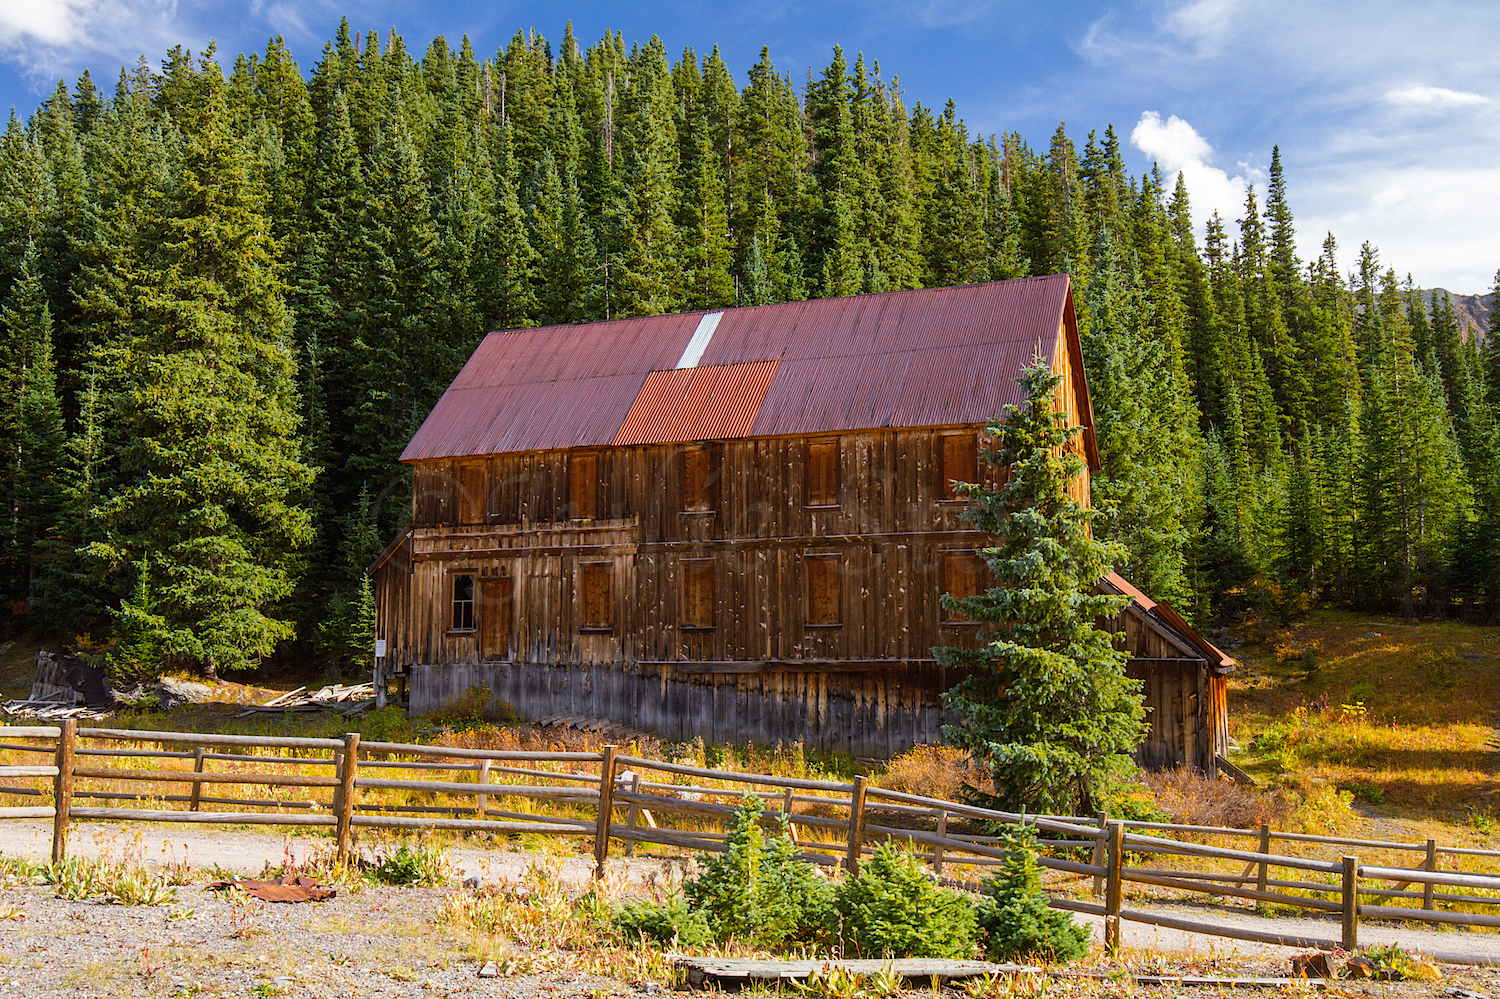 Alta Ghost Town, Image #3299